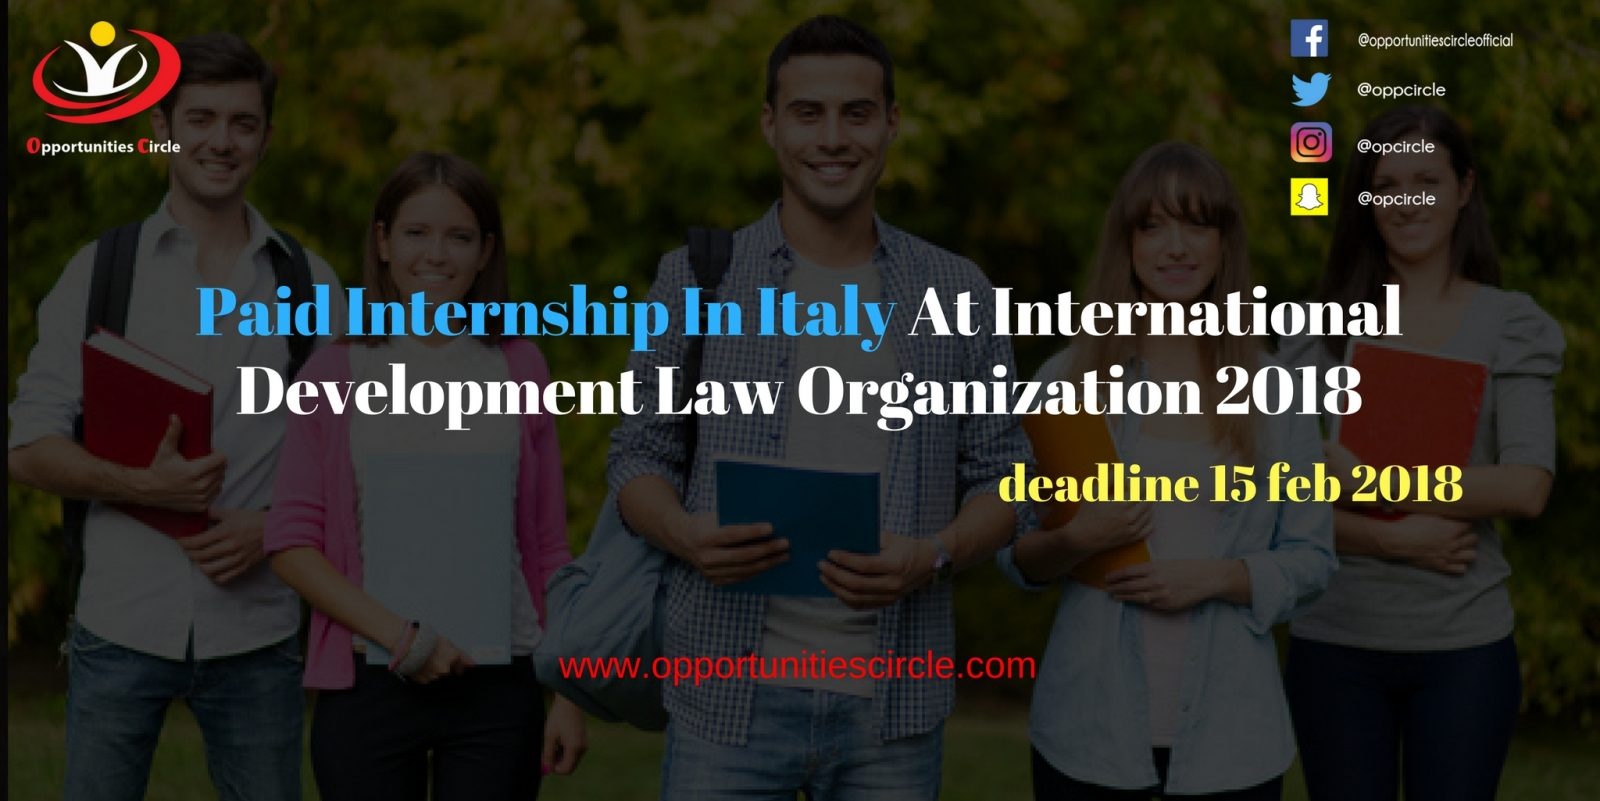 Paid Internship In Italy At International Development Law Organization 2018 - Paid Internship In Italy At International Development Law Organization 2018